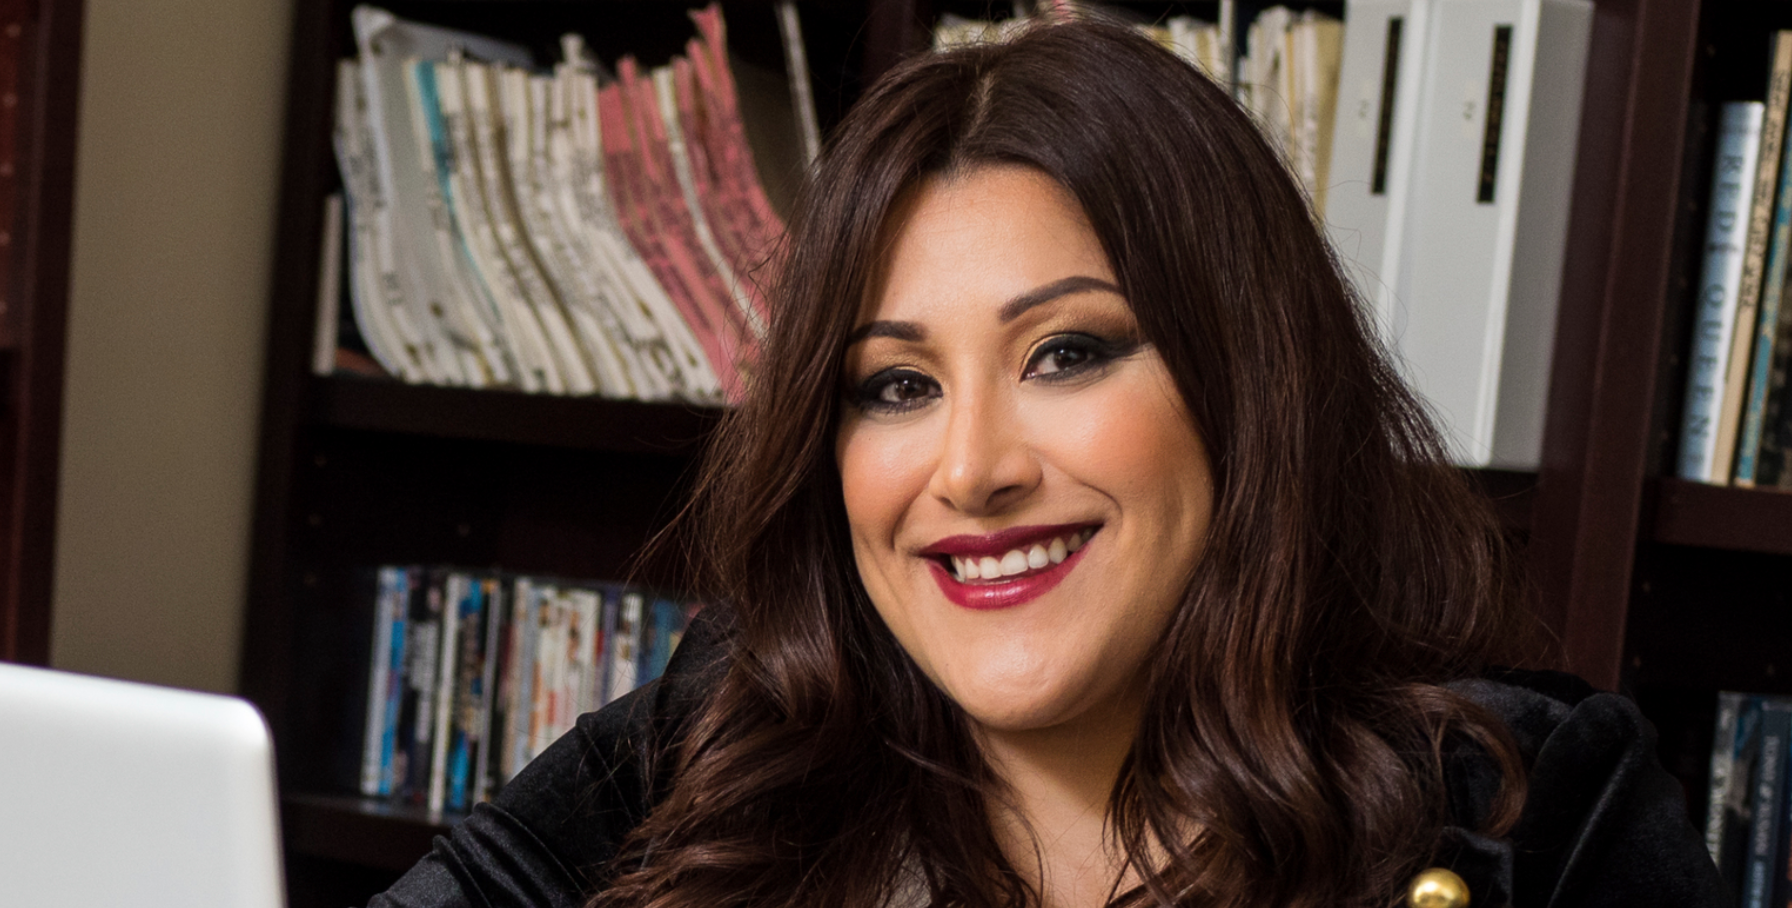 EXCLUSIVE INTERVIEW: Writer Yelyna De Leon Talks 'Murder in the Woods'